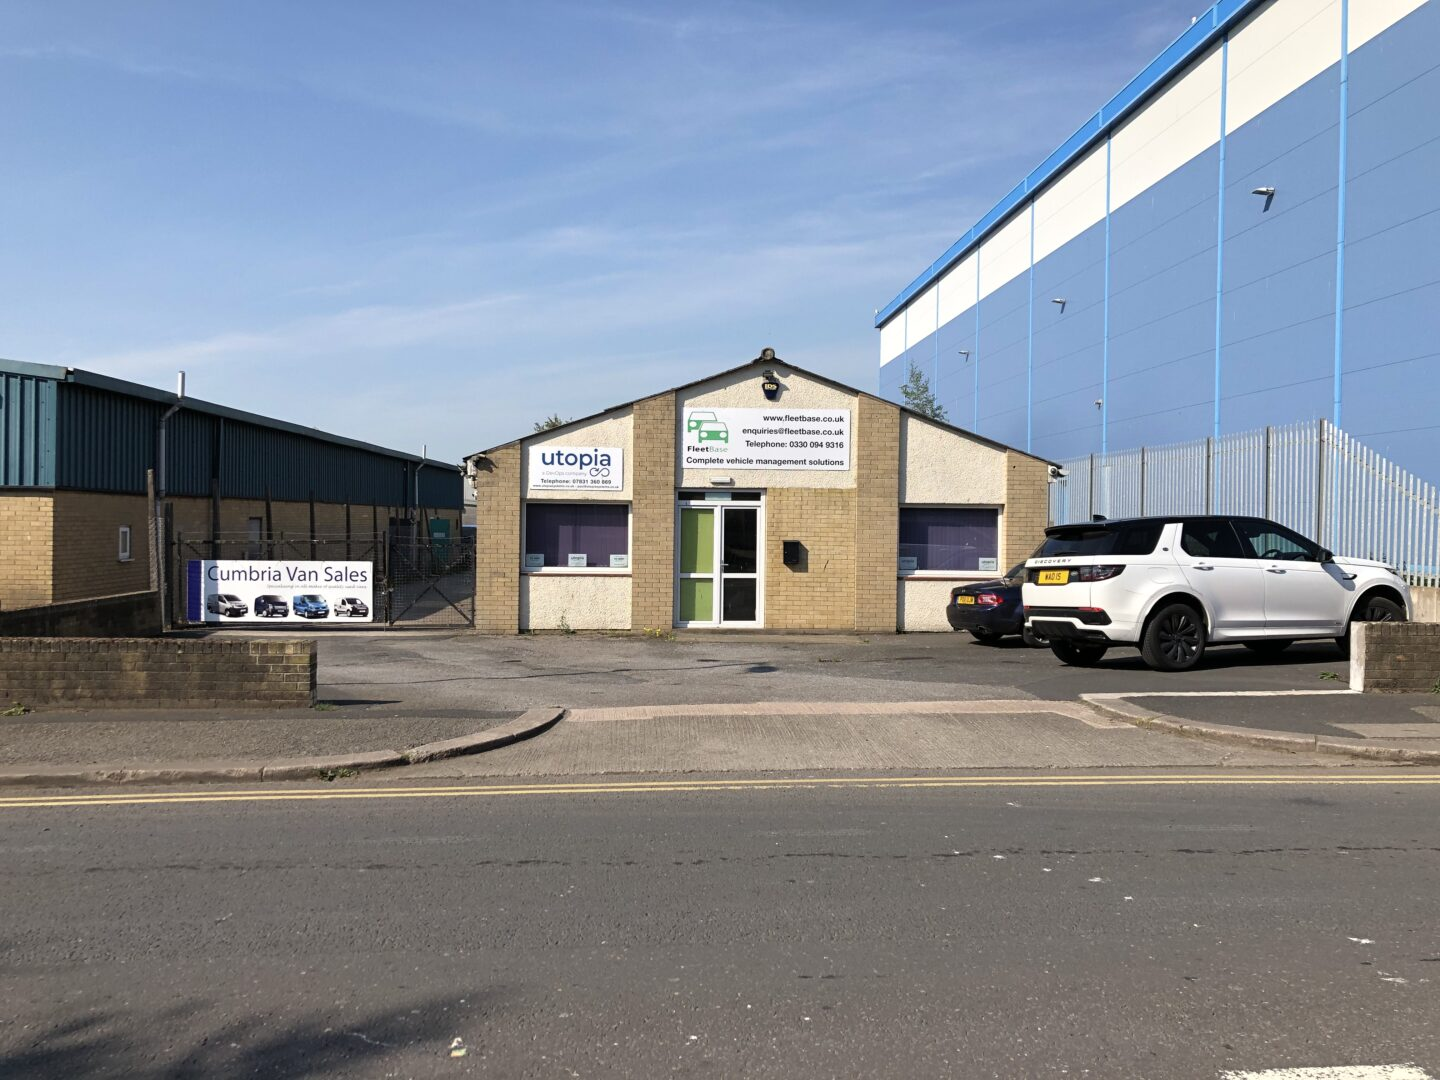 63 Millbrook Road, Kingstown Industrial Estate, Carlisle